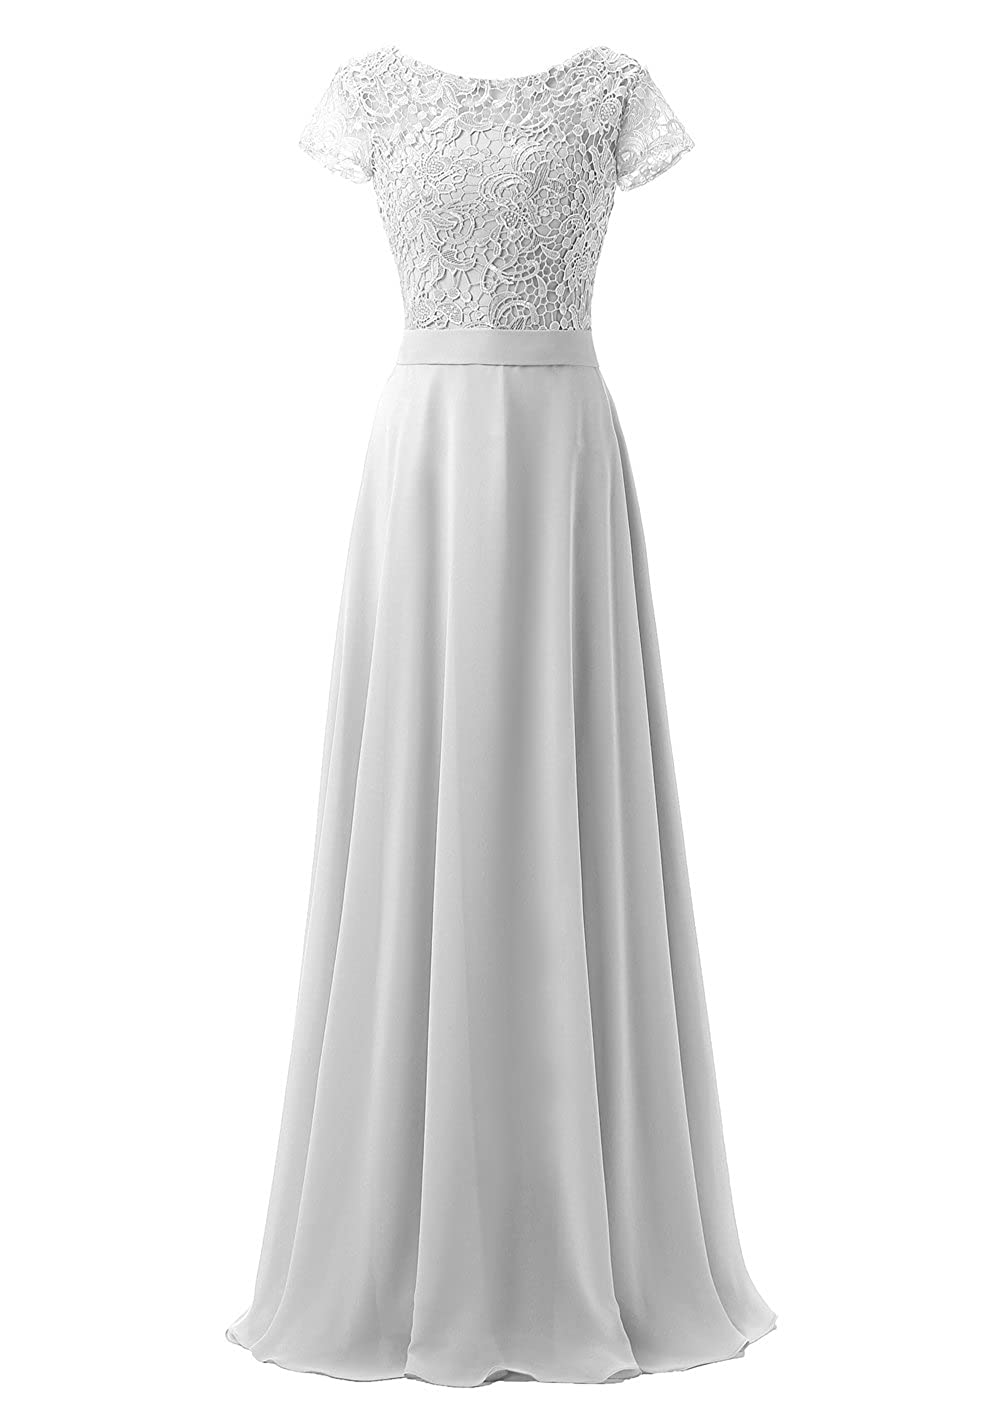 Callmelady High Neck Chiffon Lace Long Evening Dresses for Women with Short Sleeves